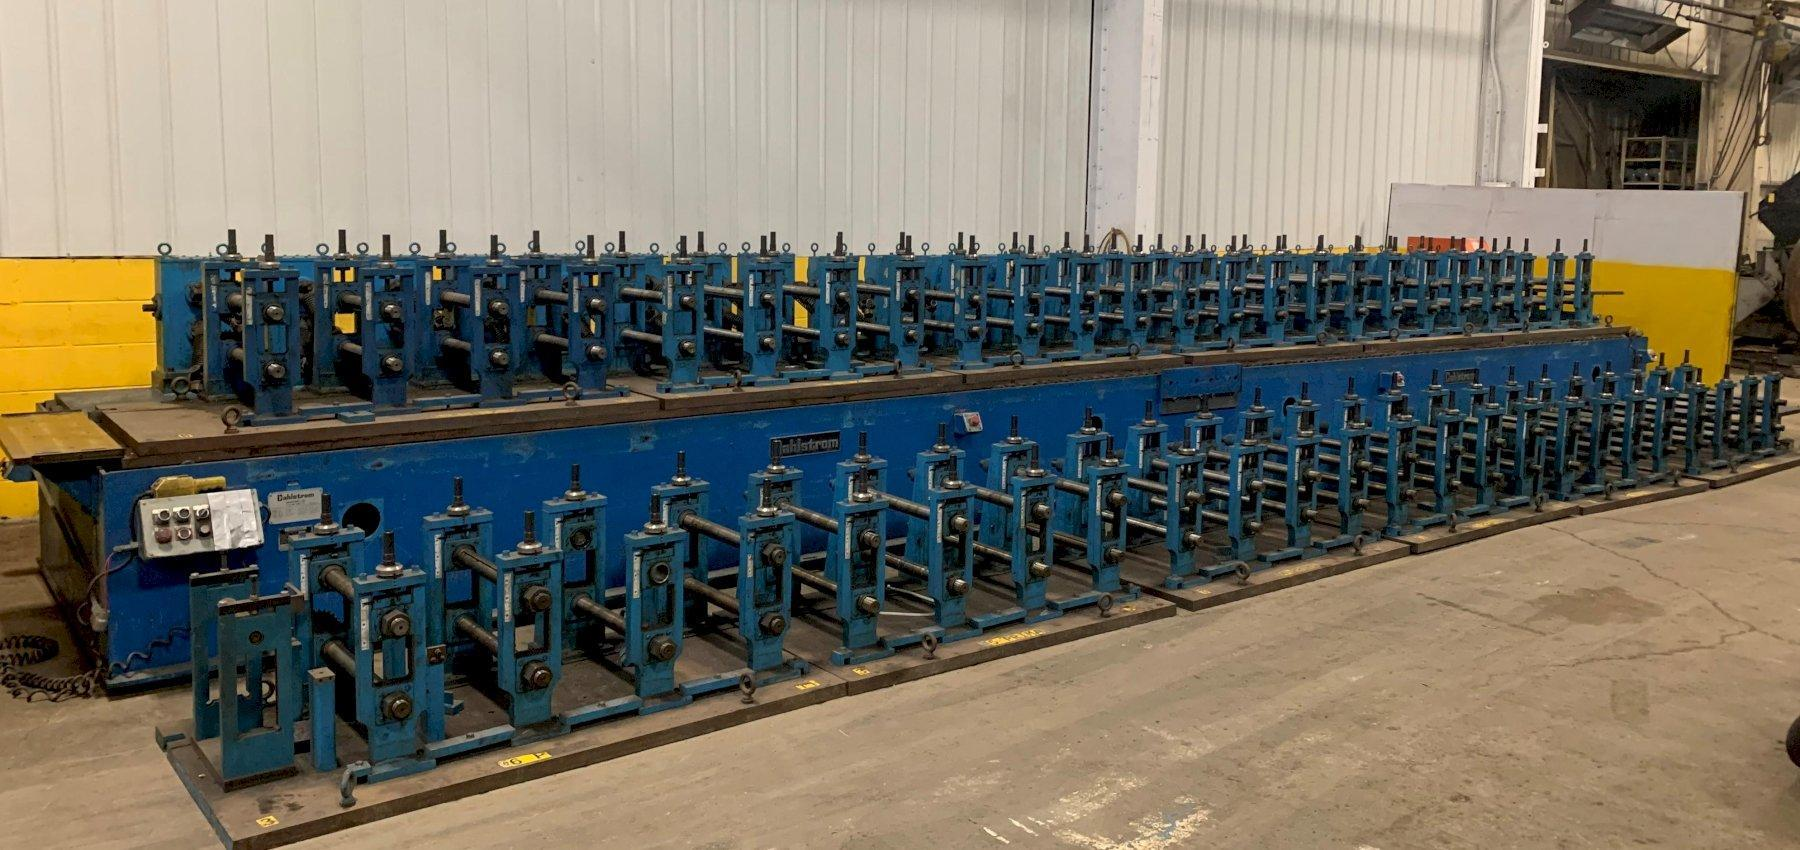 """24 STAND X 2"""" X 18"""" DAHLSTROM RAFTED U-JOINT DRIVE ROLLFORMER WITH 24 ADDITIONAL RAFTED HEADS (48 TOTAL): STOCK #10331"""